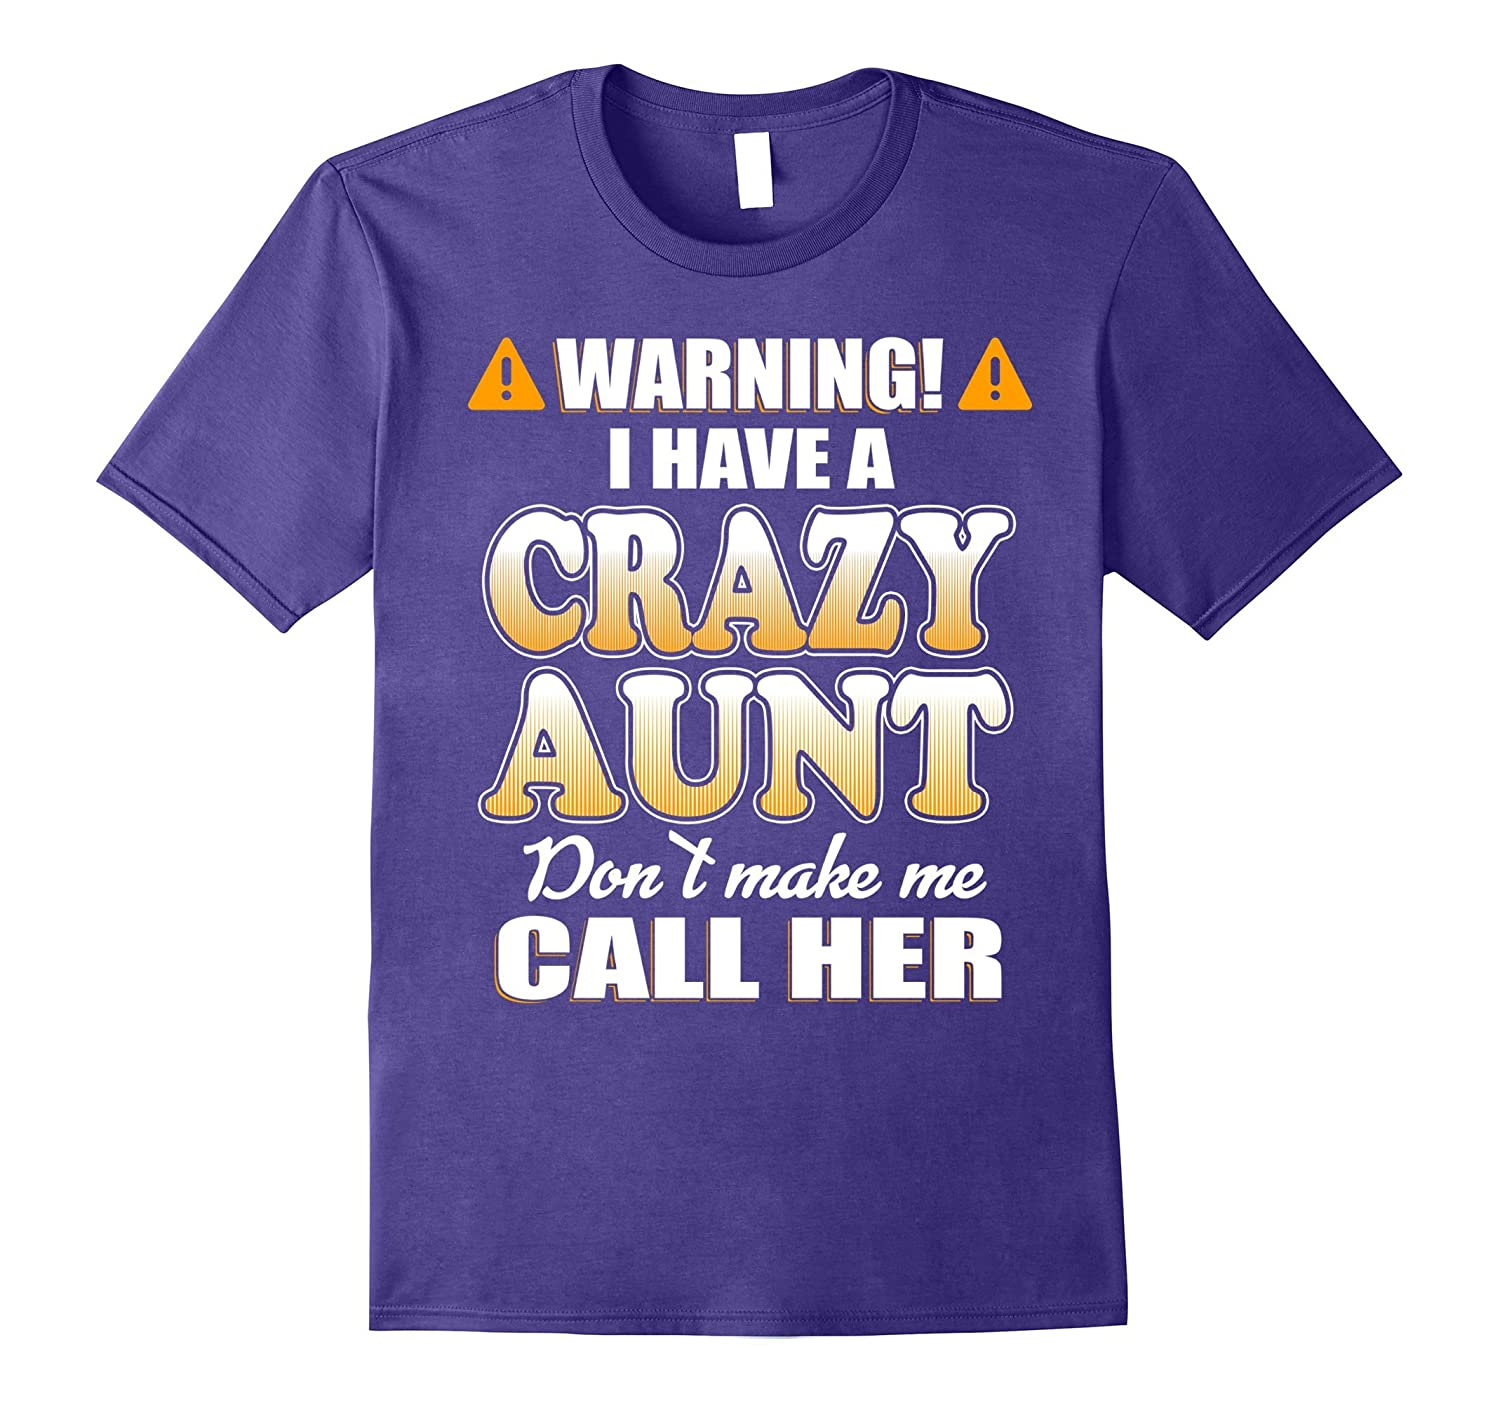 Warning I have an crazy Aunt Don't make me call her T-shirt